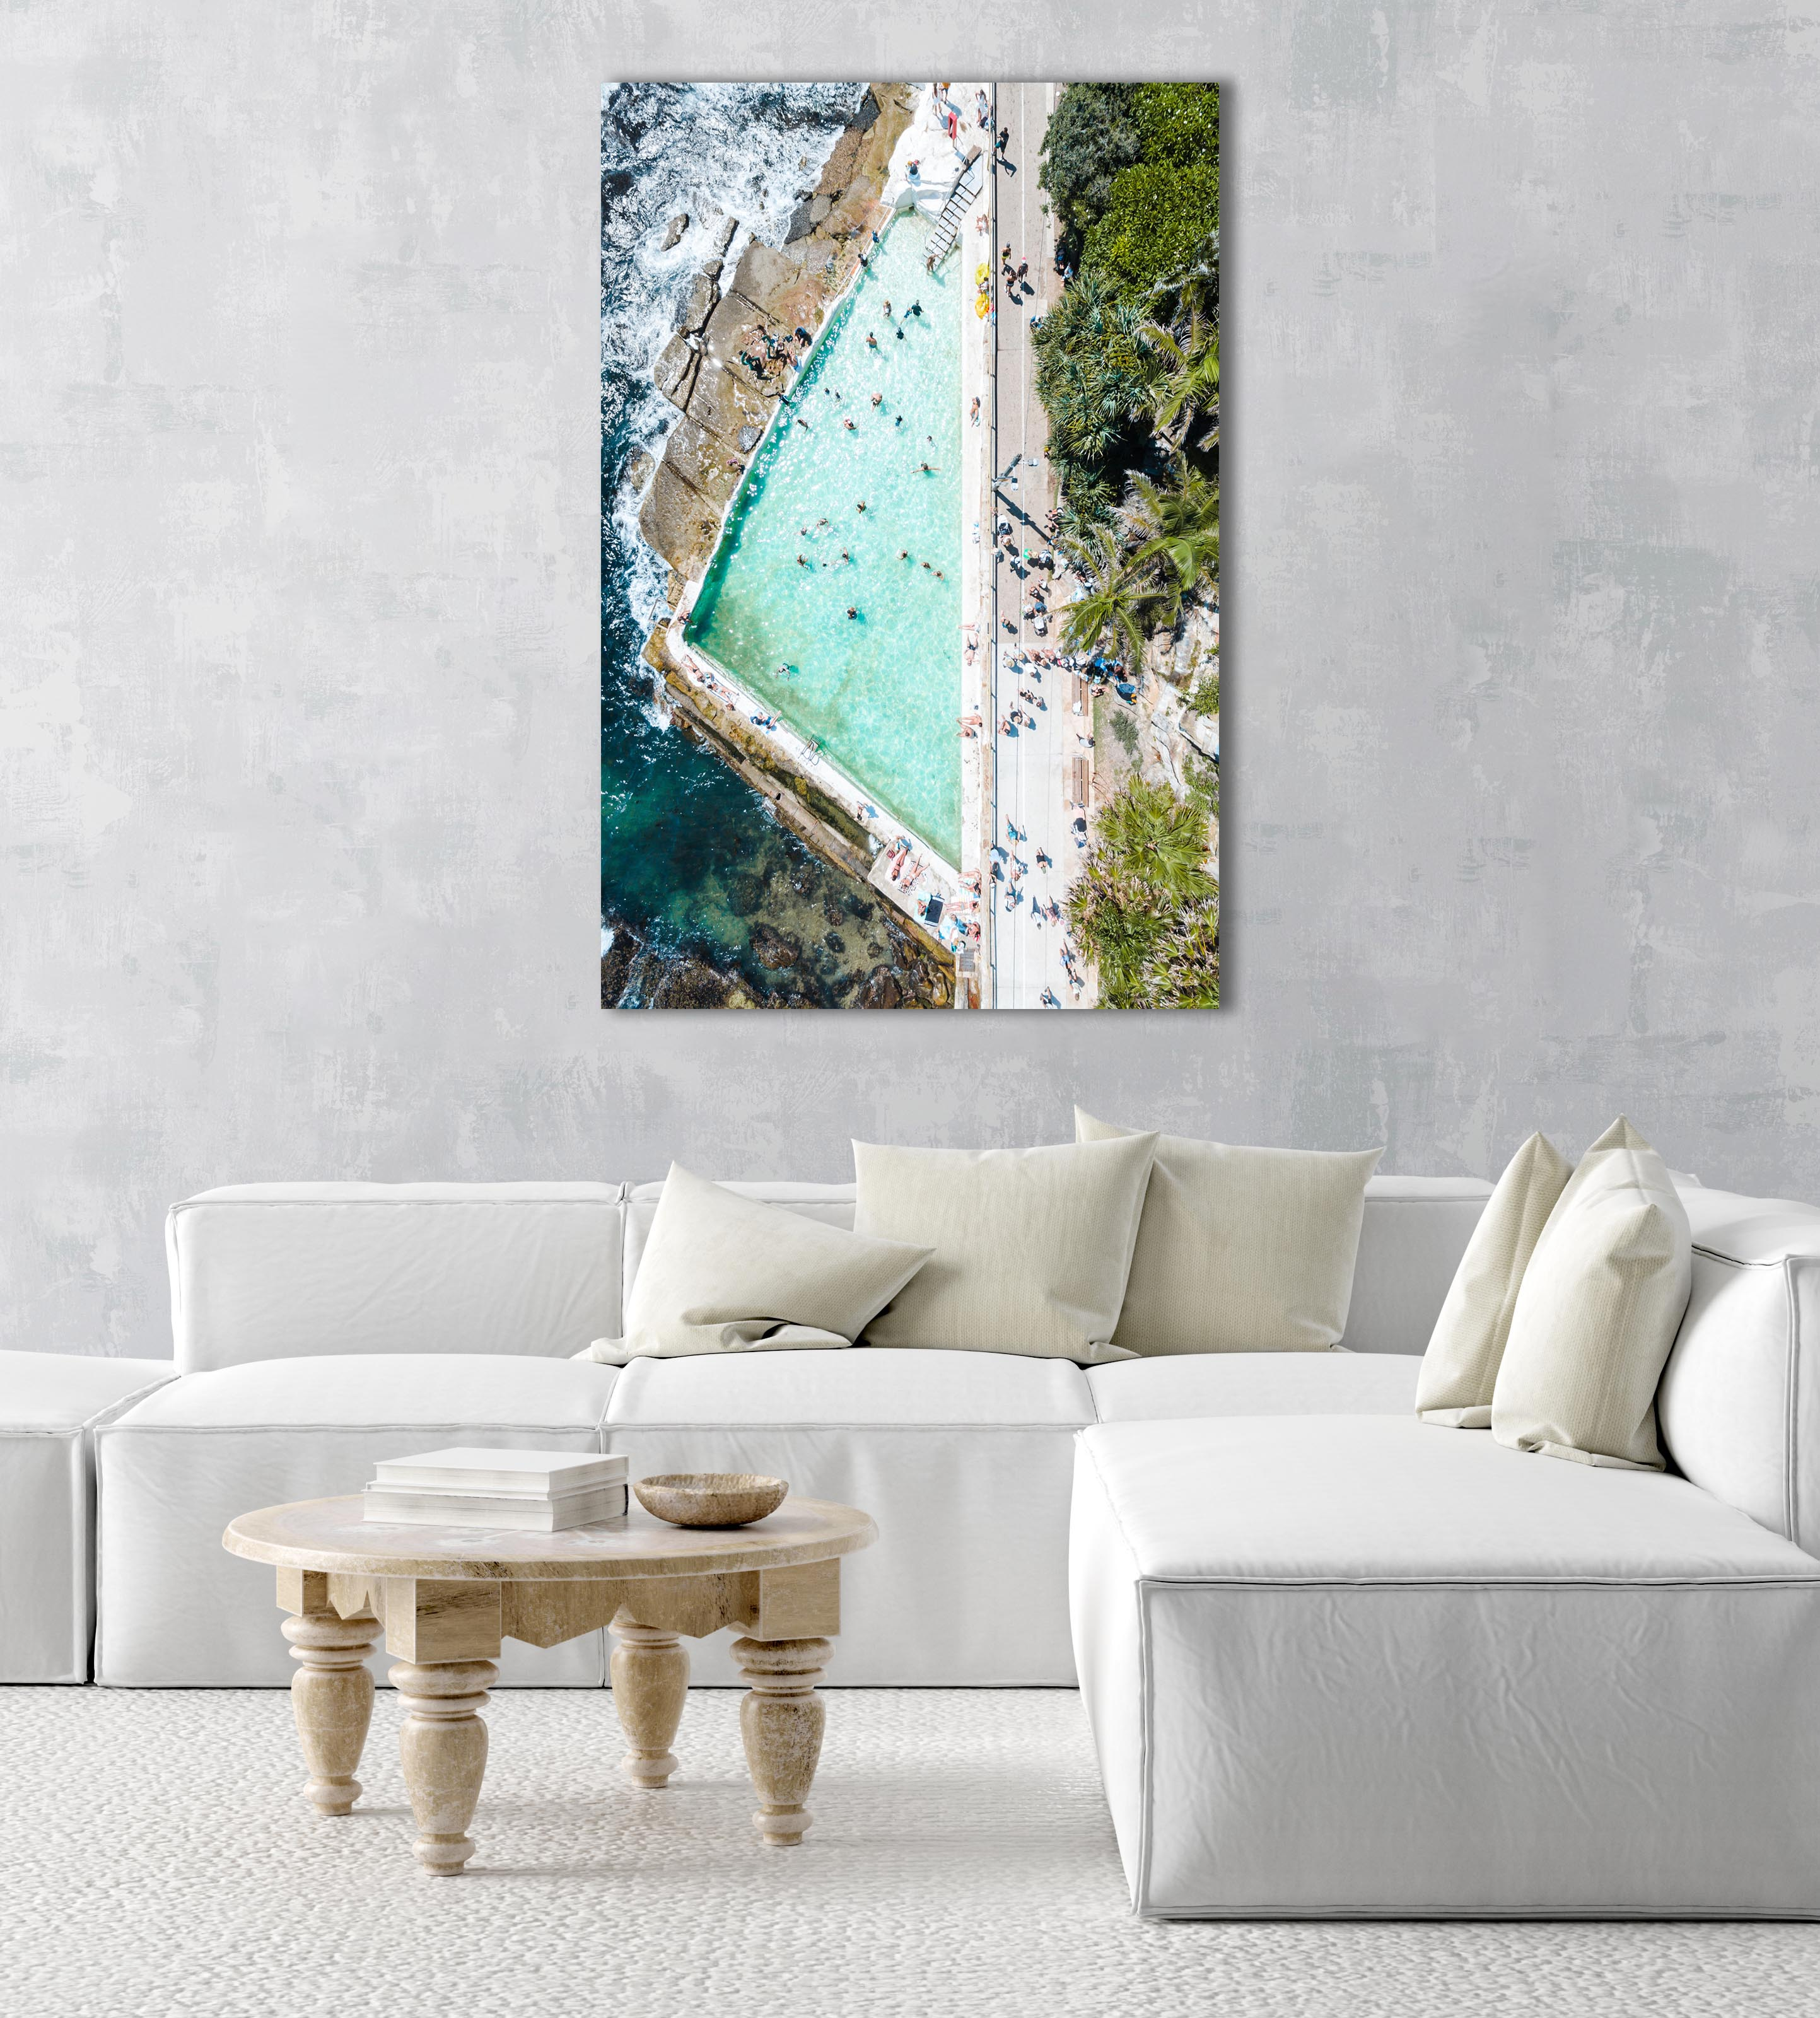 People swimming at Bower pool at Shelly Beach in Manly from above in a natural fine art frame